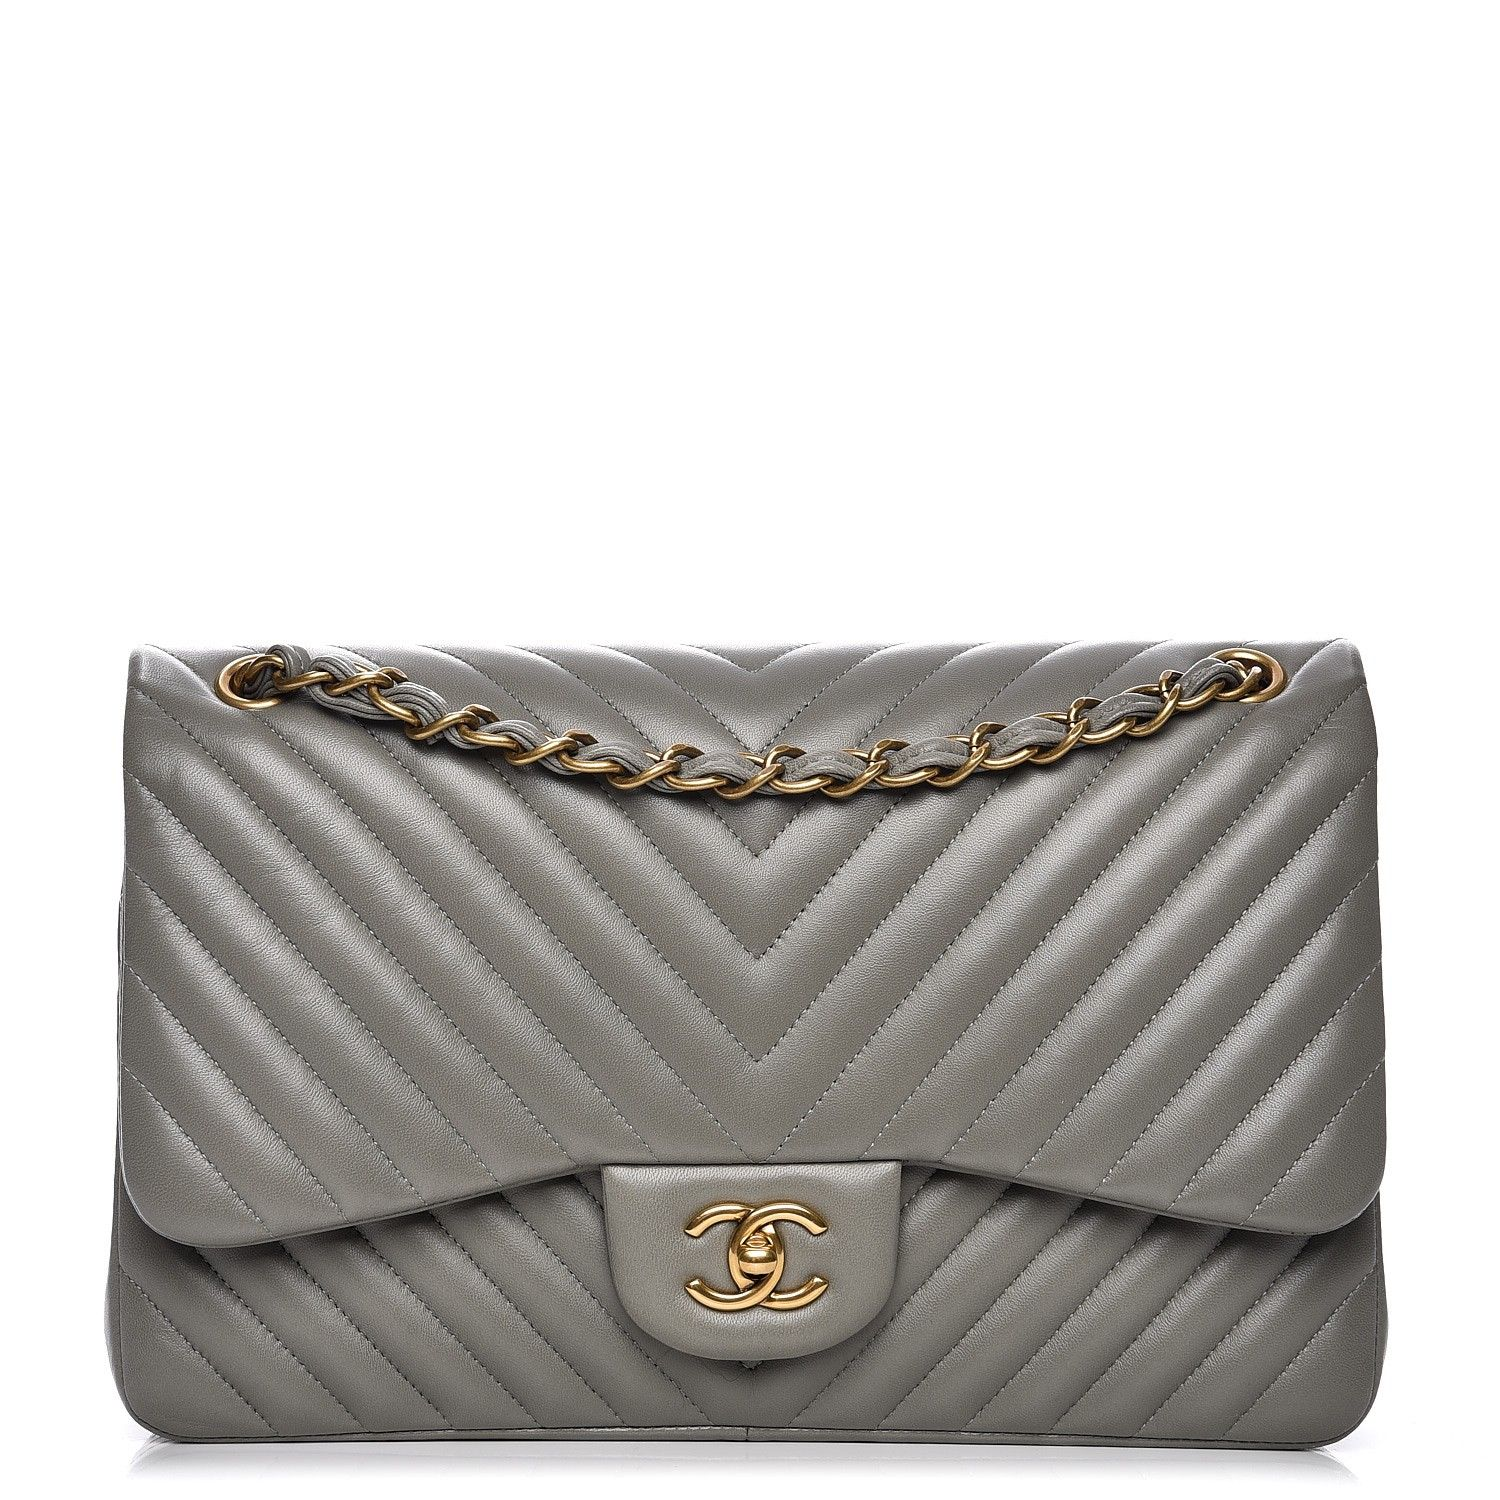 e680bc78ef8e This is an authentic CHANEL Lambskin Chevron Quilted Jumbo Double Flap in  Grey. This stylish